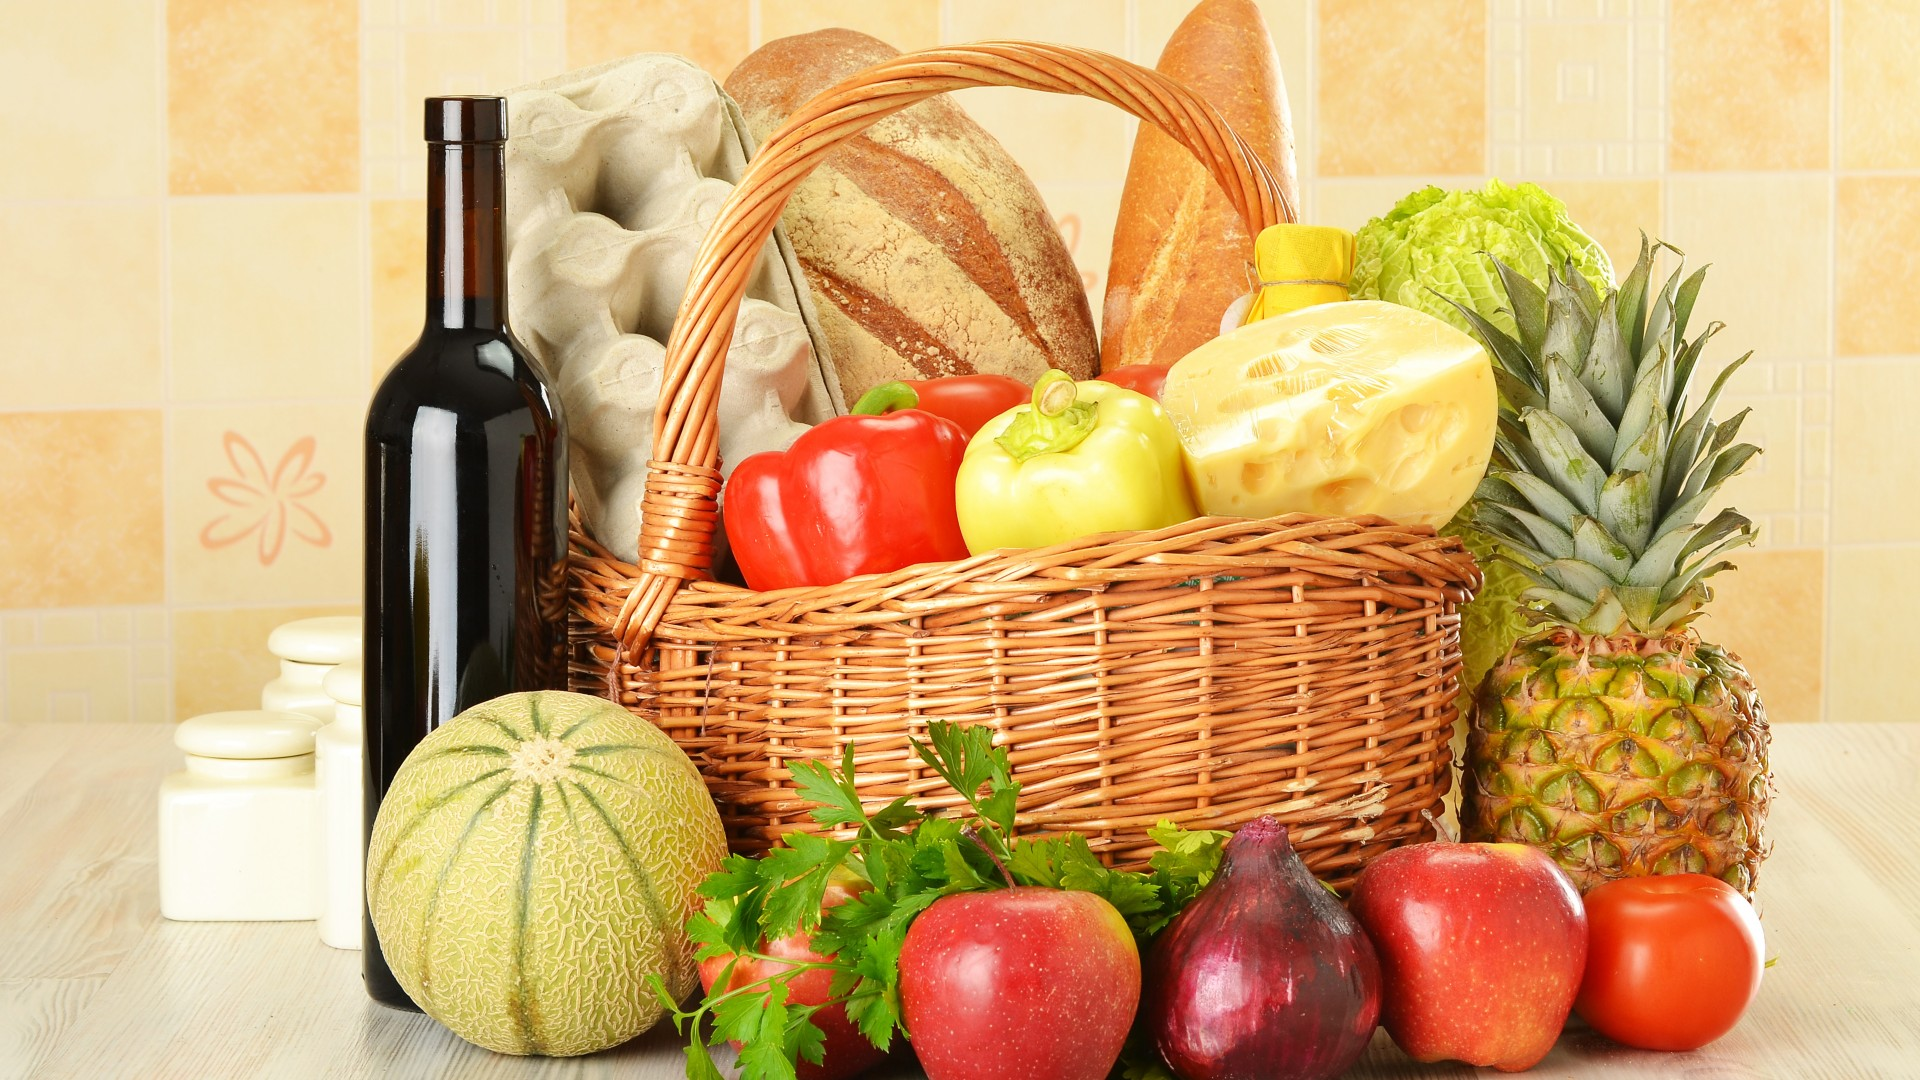 Download-basket-vegetables-fruit-a-bottle-of-wine-red-eggs-bread-cheese-food-resolu-wallpaper-wp3804810